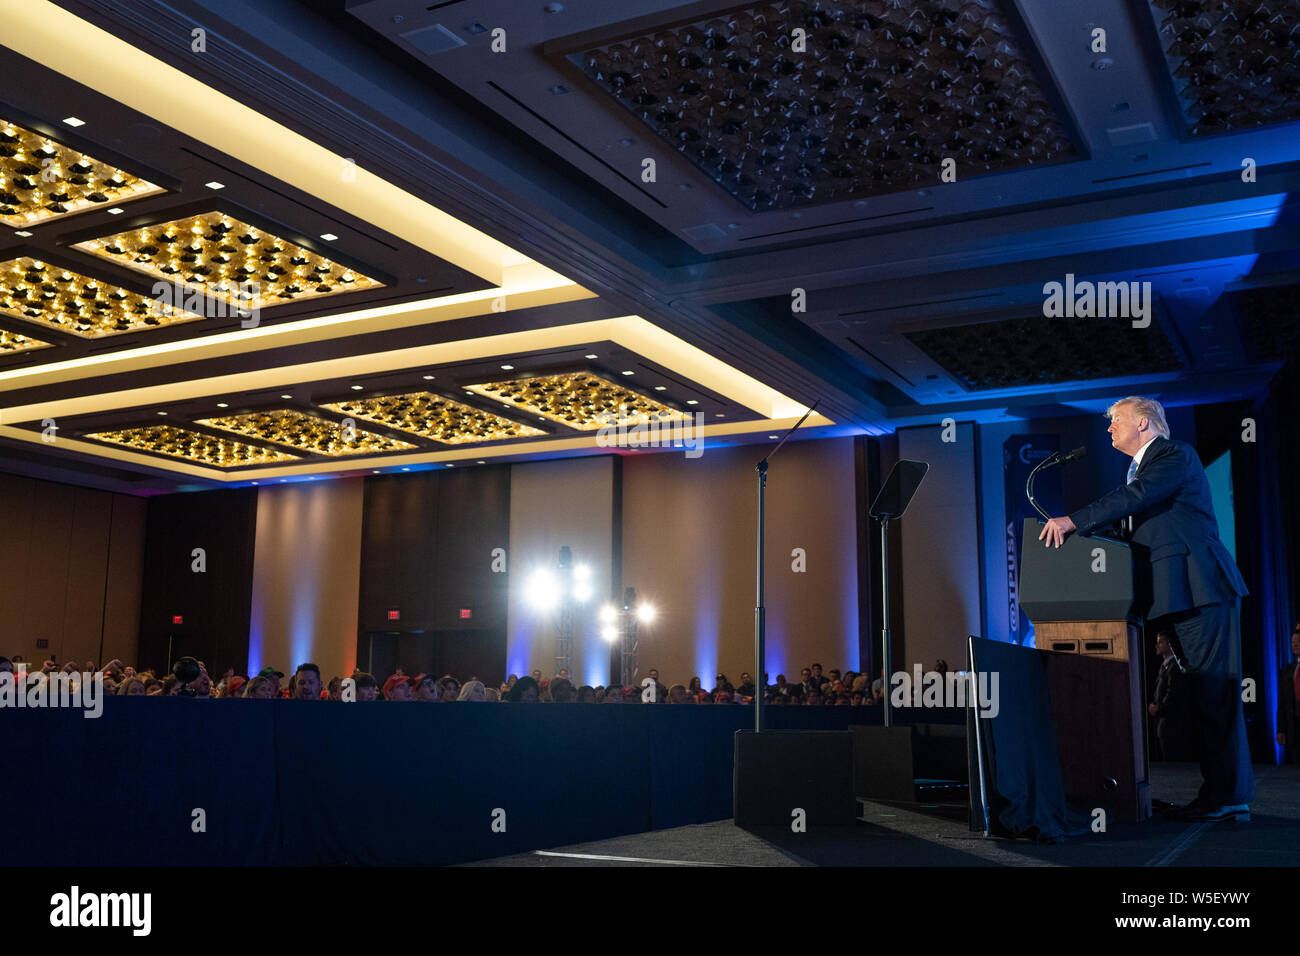 Washington, United States Of America. 23rd July, 2019. President Donald J. Trump delivers remarks at the Turning Point USA Teen Action Summit Tuesday, July 23, 2019, at the Marriott Marquis in Washington, DC People: President Donald Trump Credit: Storms Media Group/Alamy Live News Stock Photo